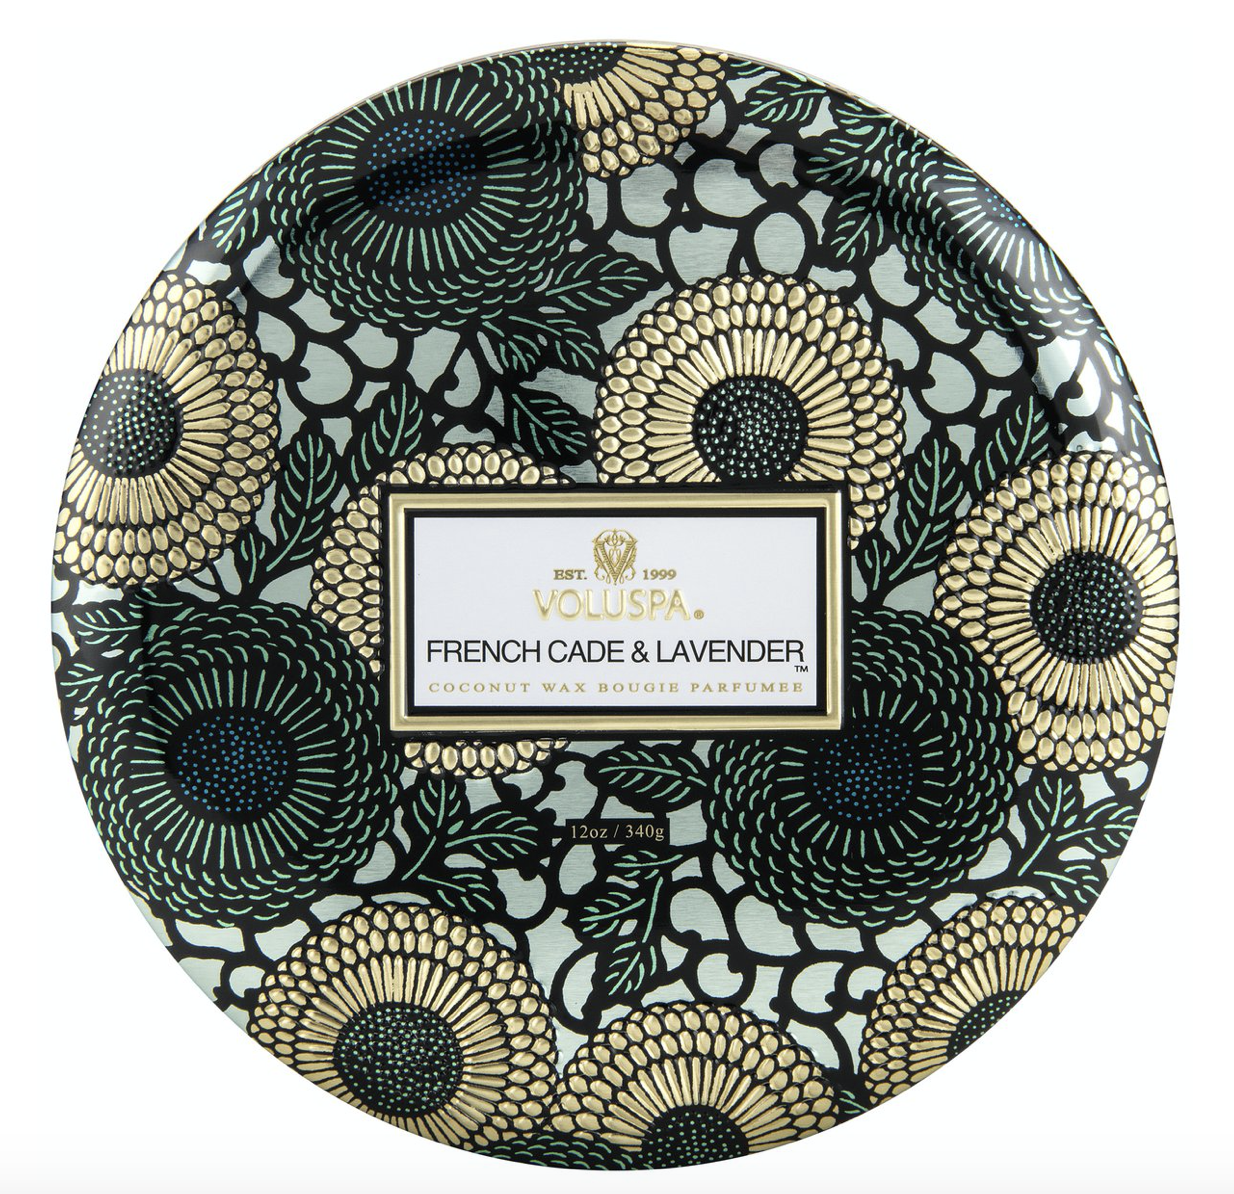 Voluspa French Cade Lavender, 3-Wick Candle in Tin